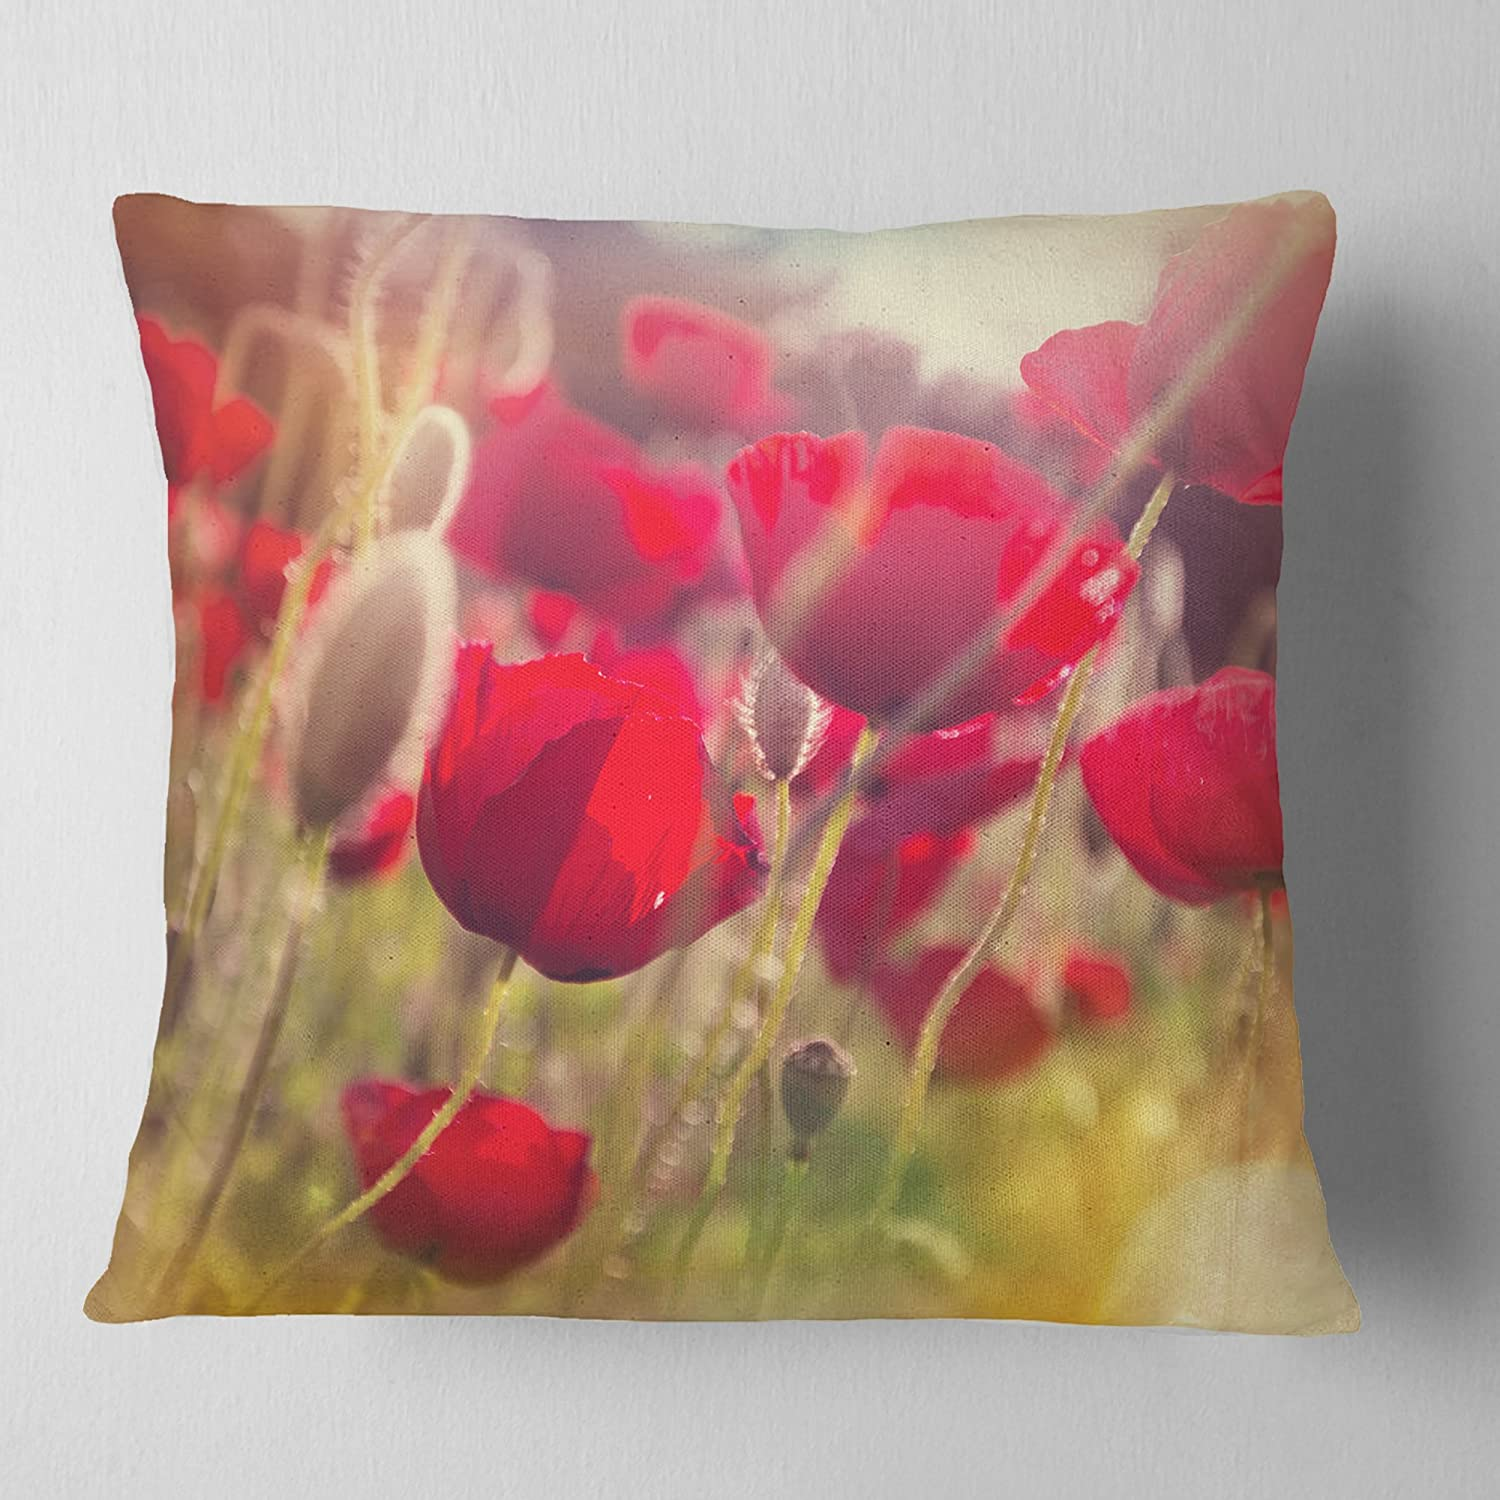 Sofa Throw Pillow 18 in x 18 in Designart CU12339-18-18 Poppy Meadow in Sunlight Flower Cushion Cover for Living Room in Insert Printed On Both Side